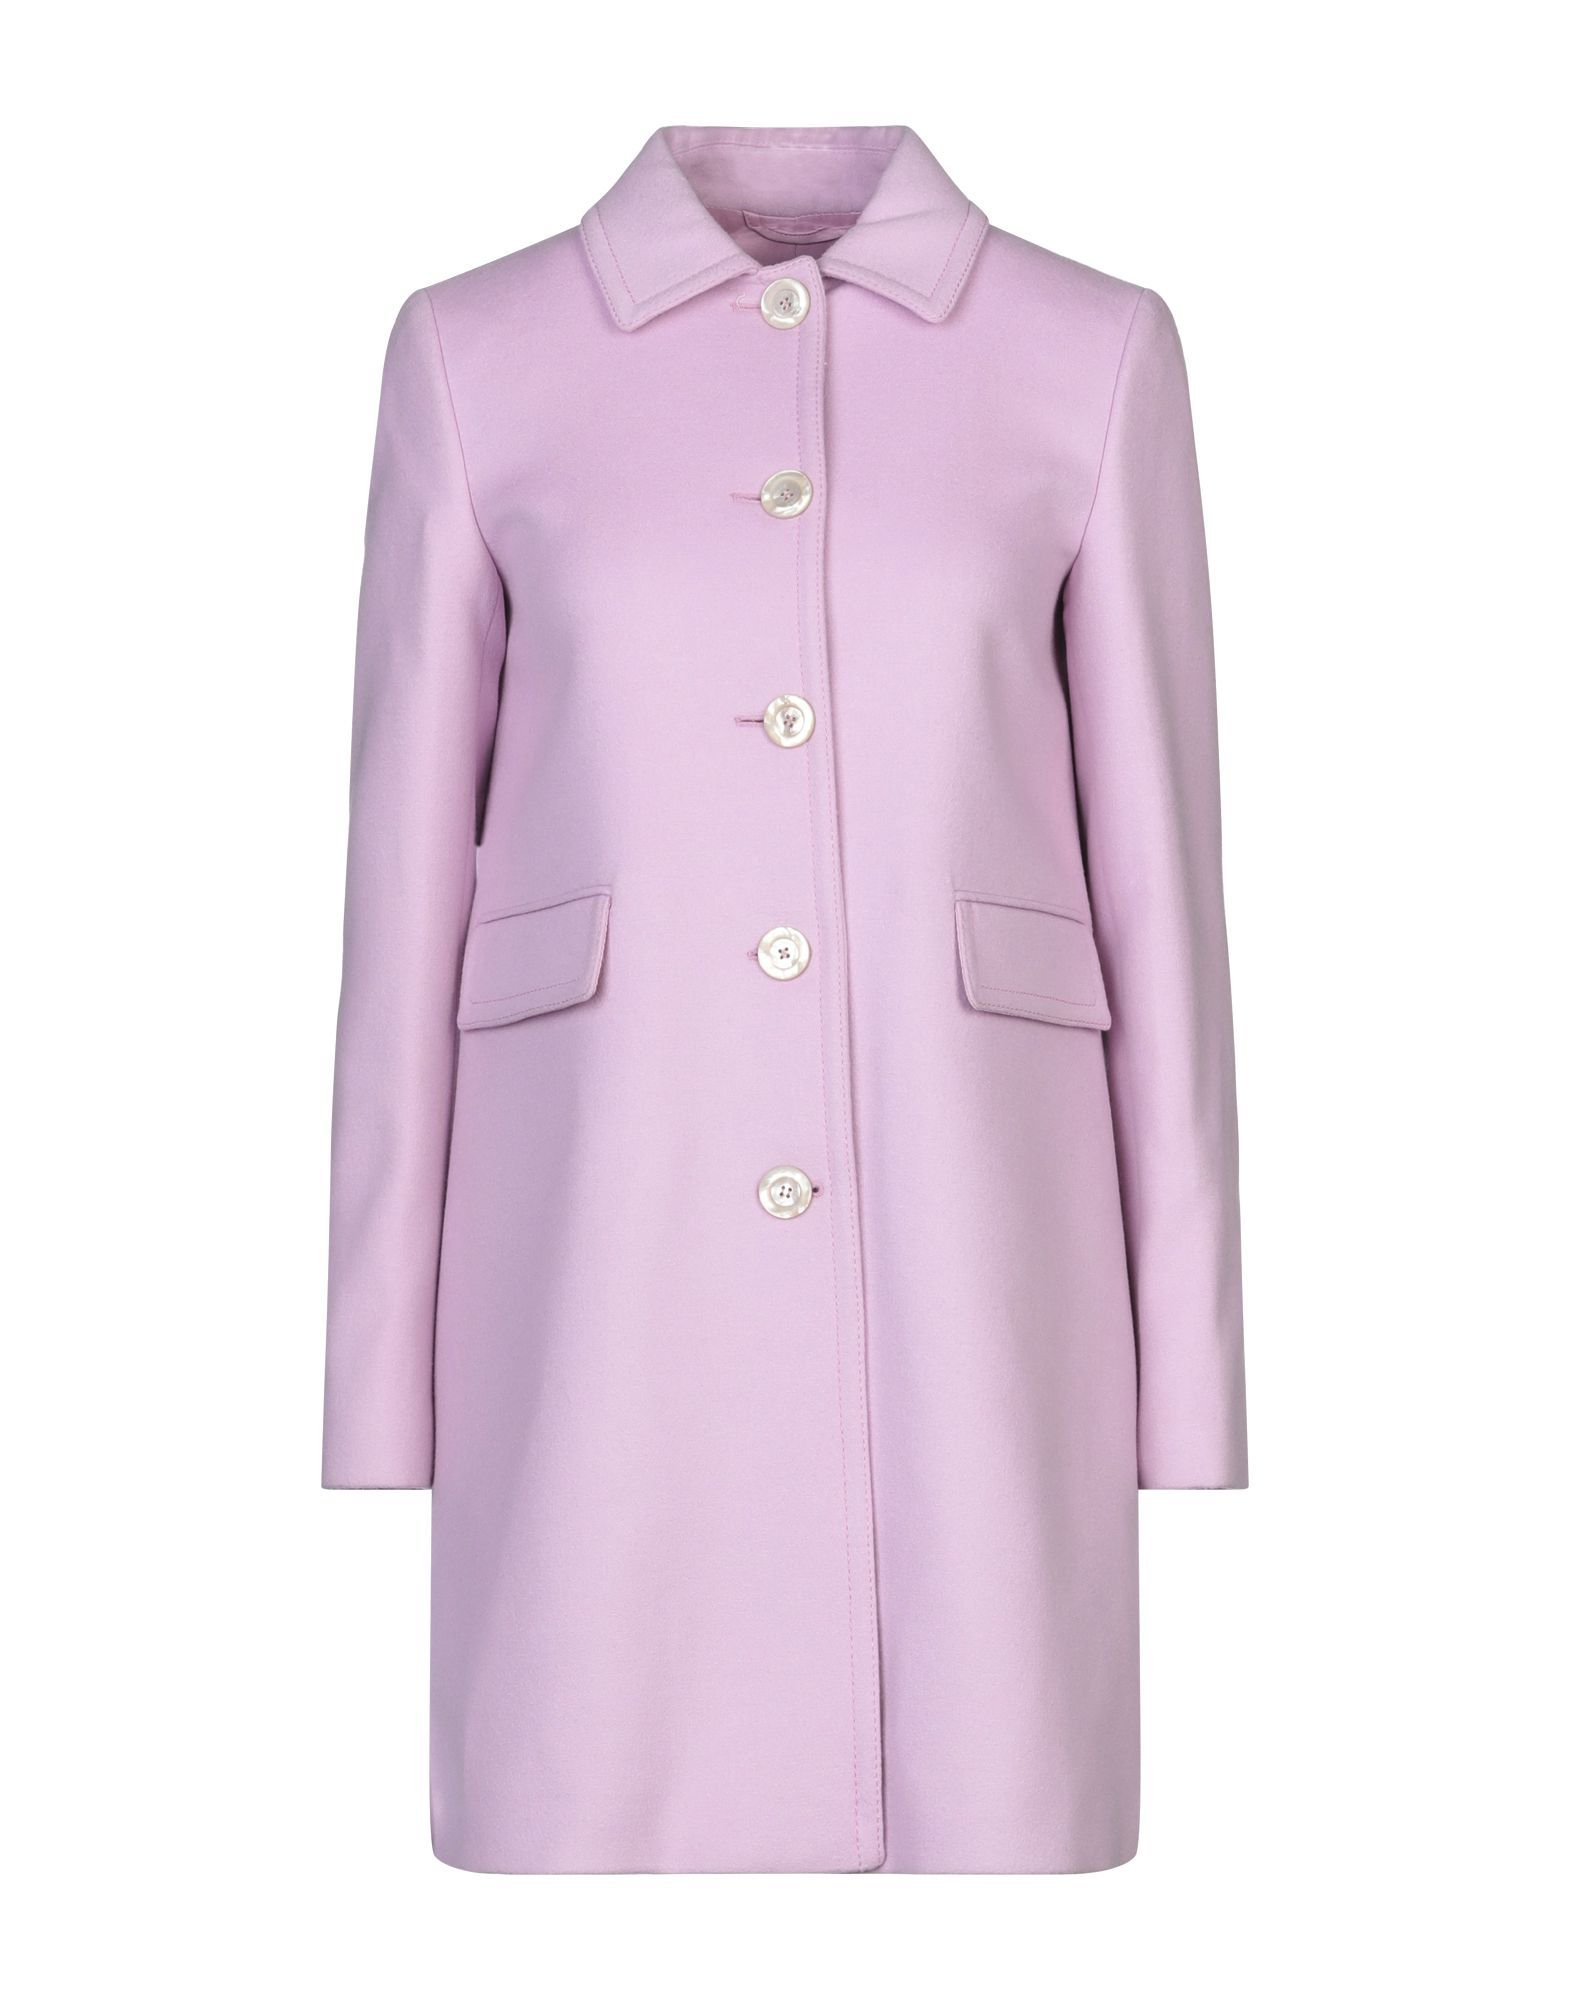 Gucci Lilac Wool Overcoat